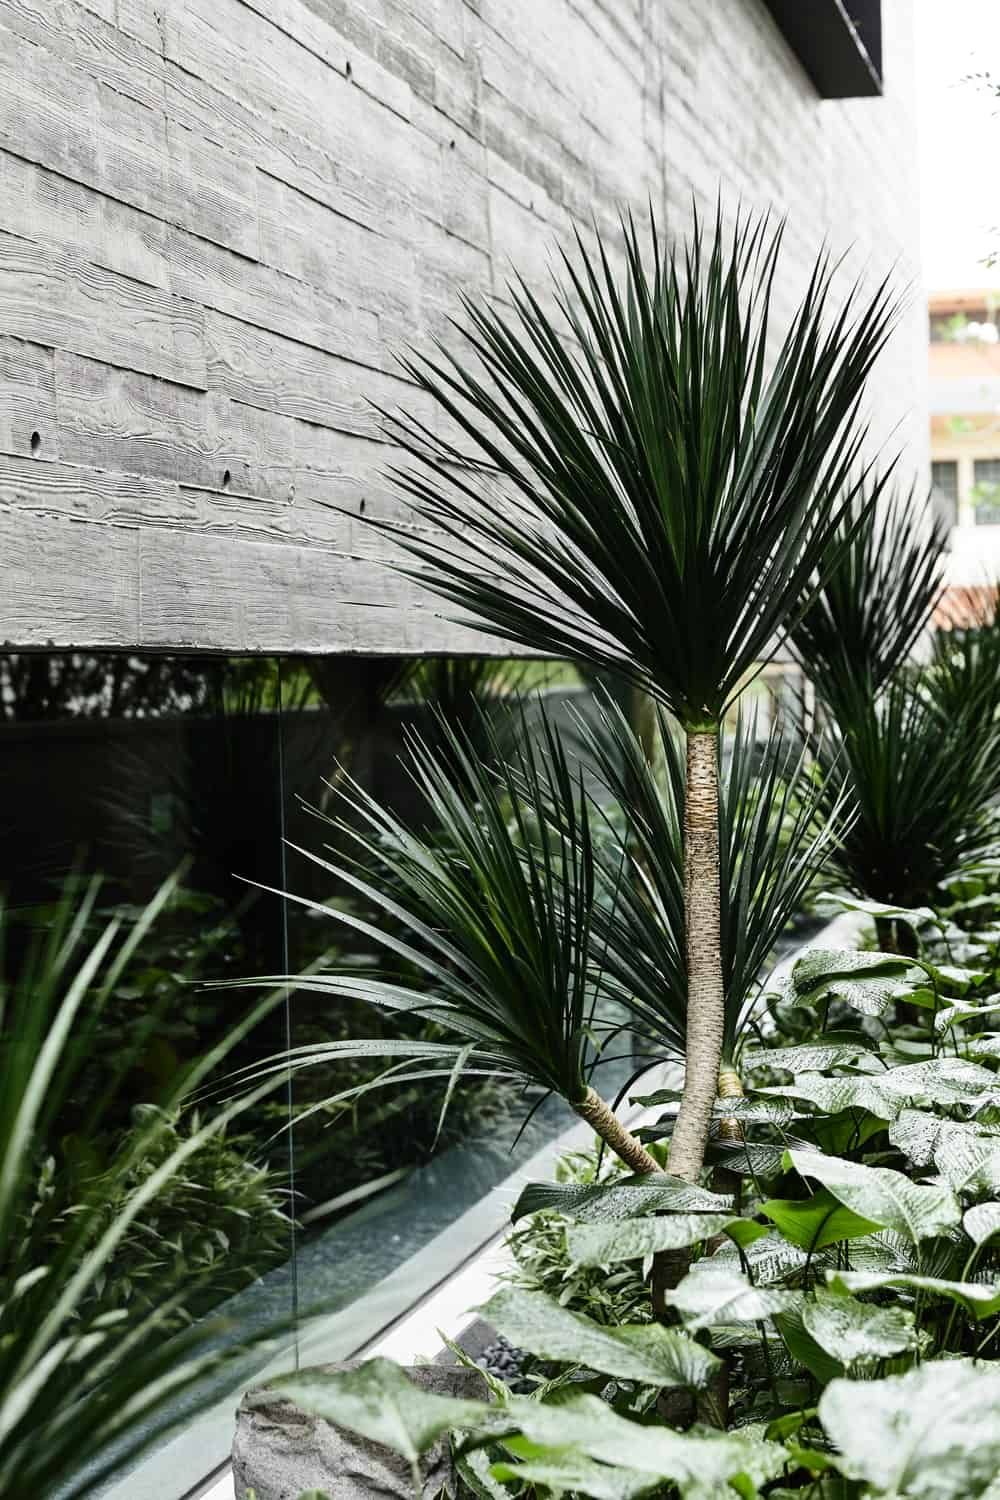 This textured gray wall is adorned with a lush landscaping of tropical plants and shrubs and glass panels at the base.